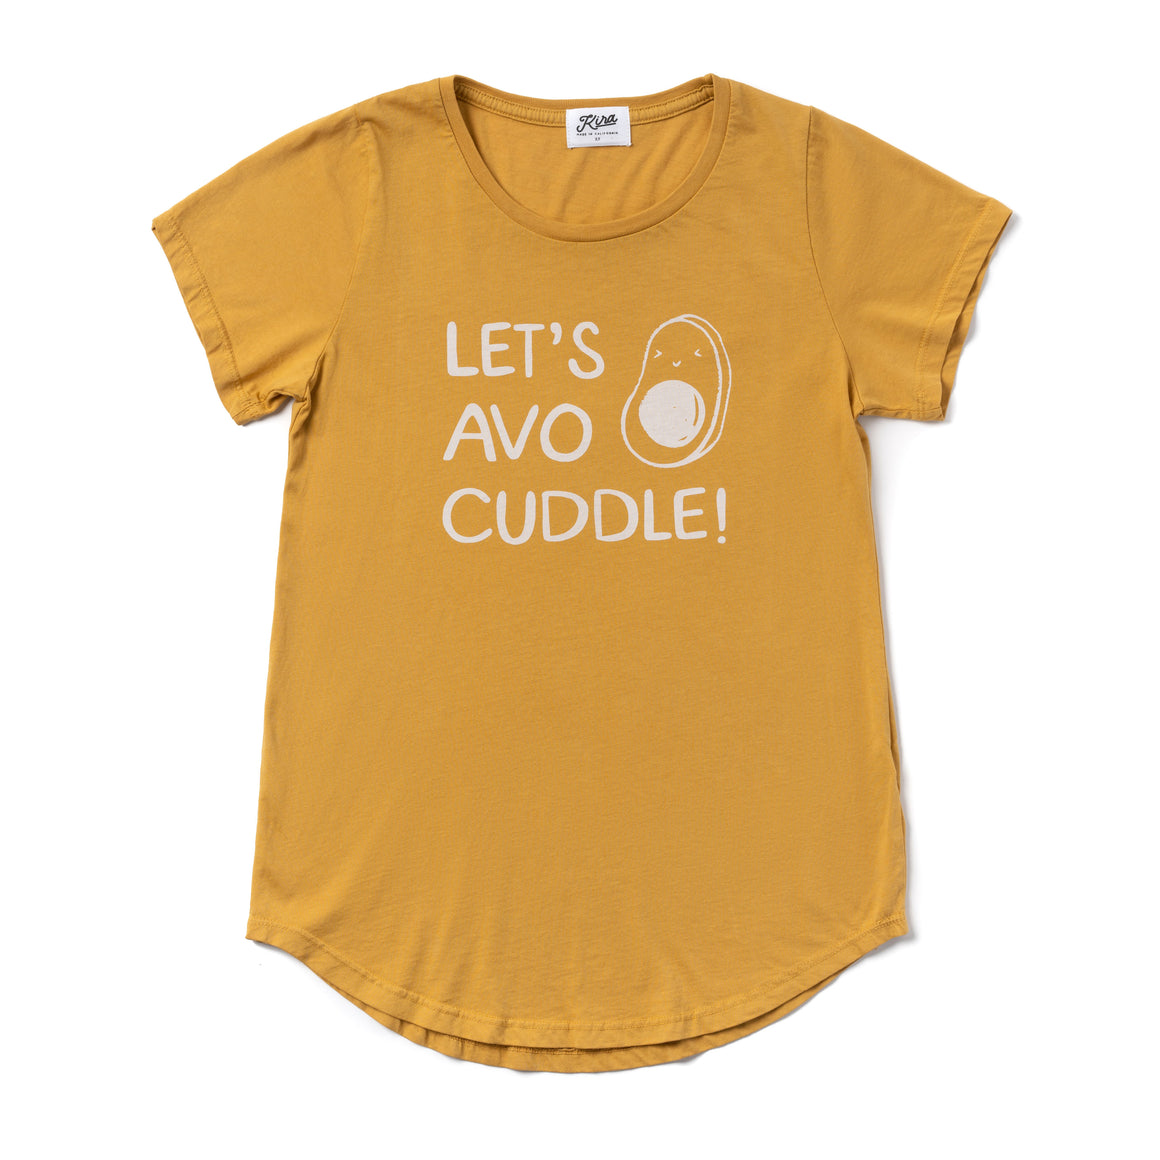 Let's Avo Cuddle Scoop Neck T-shirt, Golden | Women